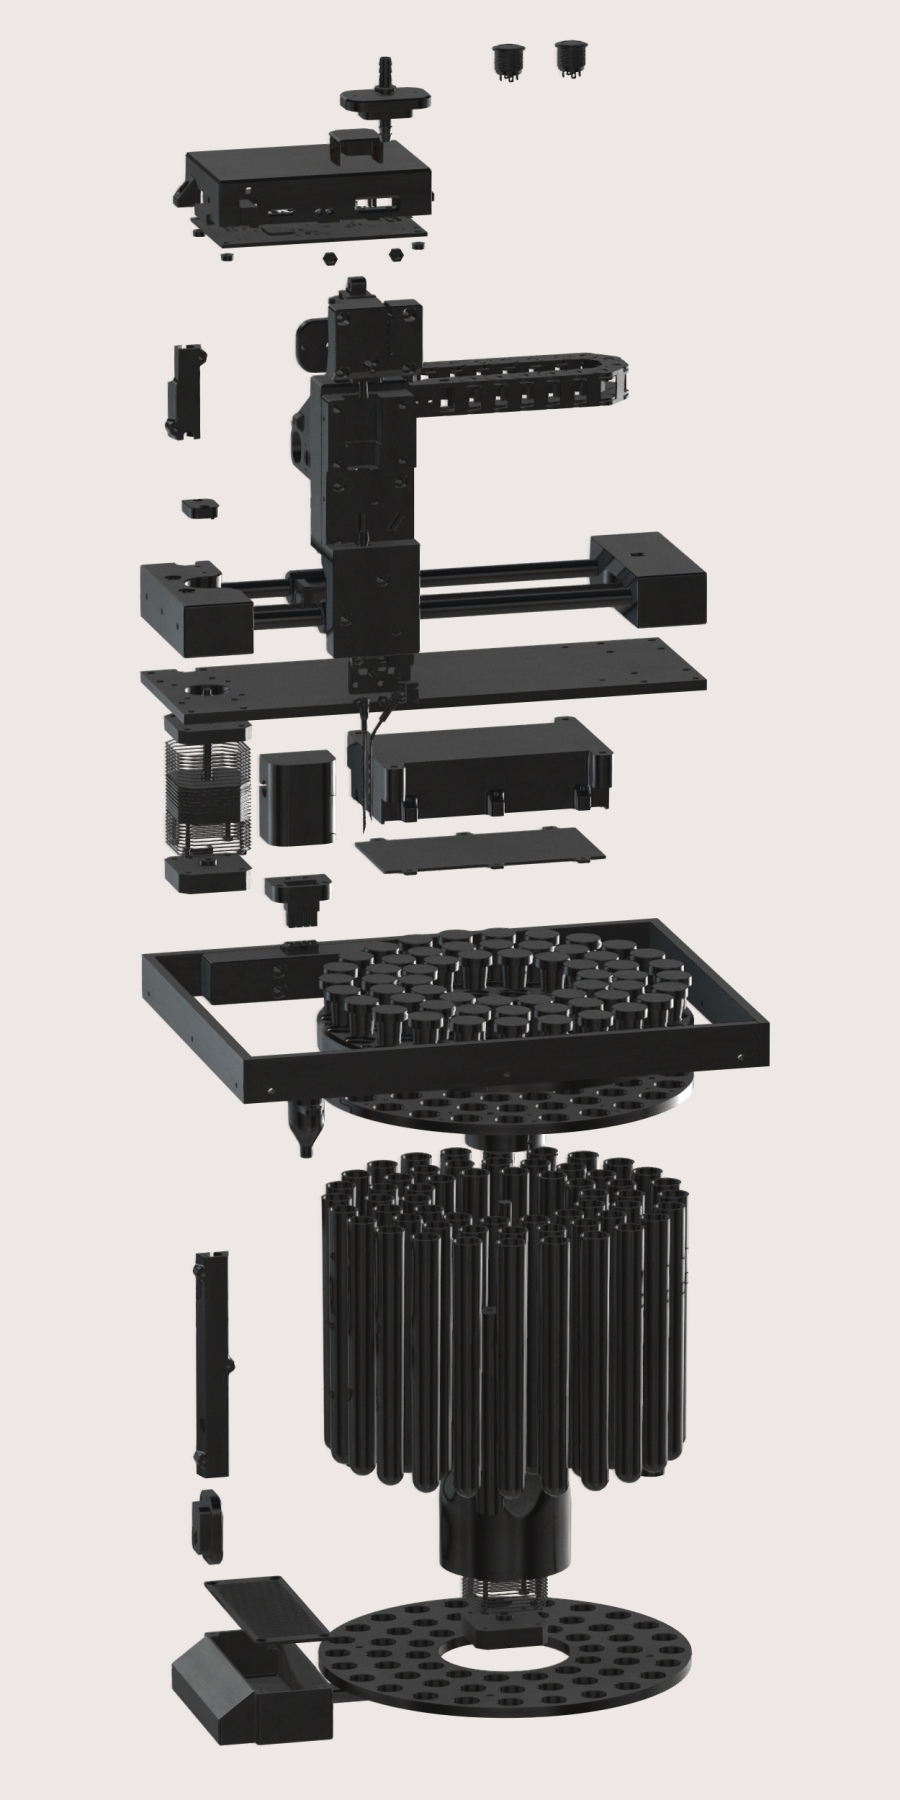 3D render of Syp autosampler in exploded view.